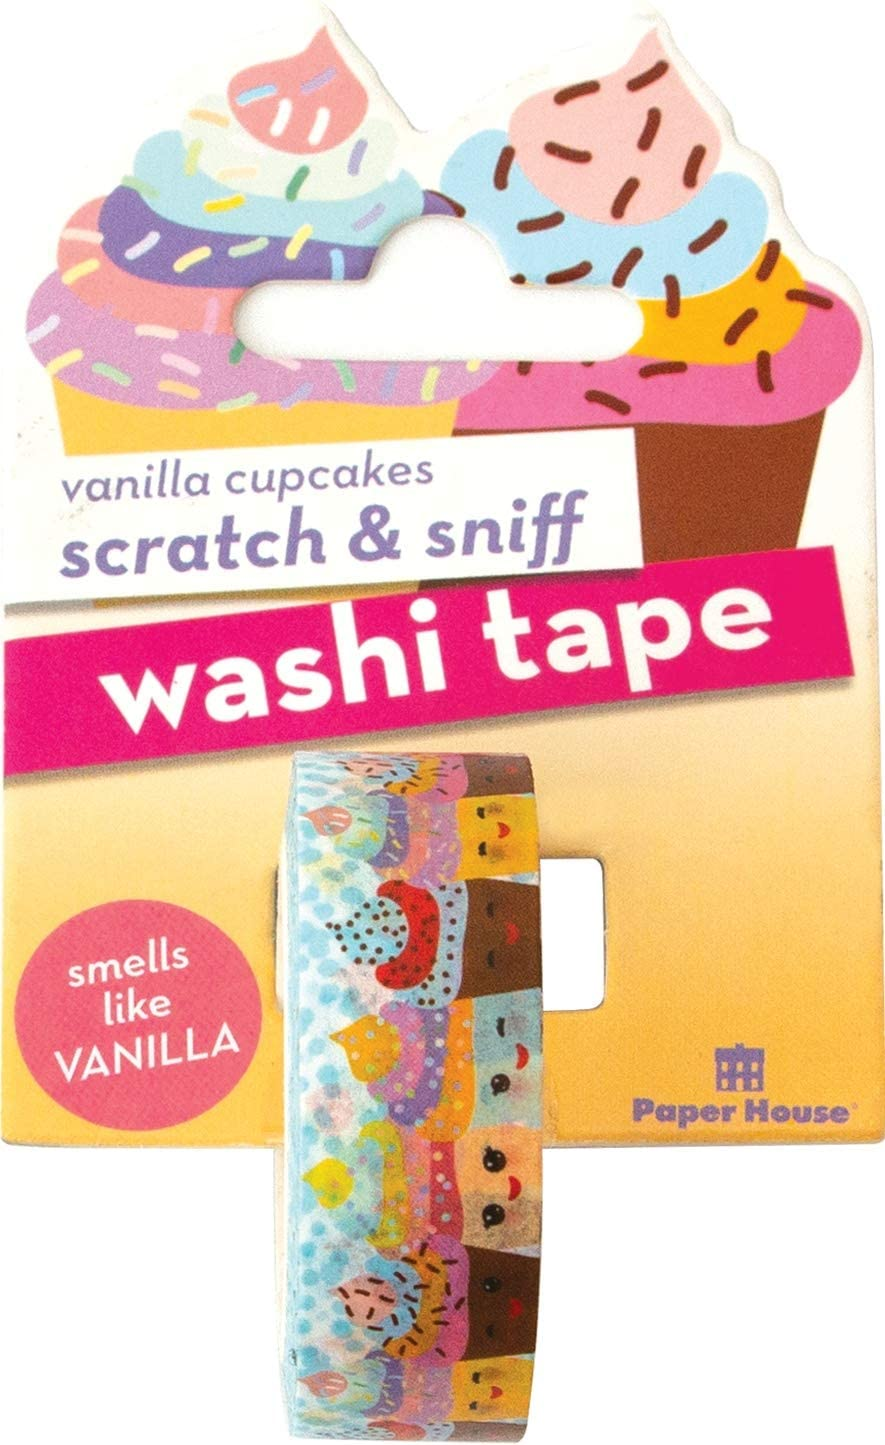 Paper House Productions Kawaii Cupcakes Vanilla Scented Scratch & Sniff Fun Print 15mm Washi Tape for Crafts and Scrapbooking